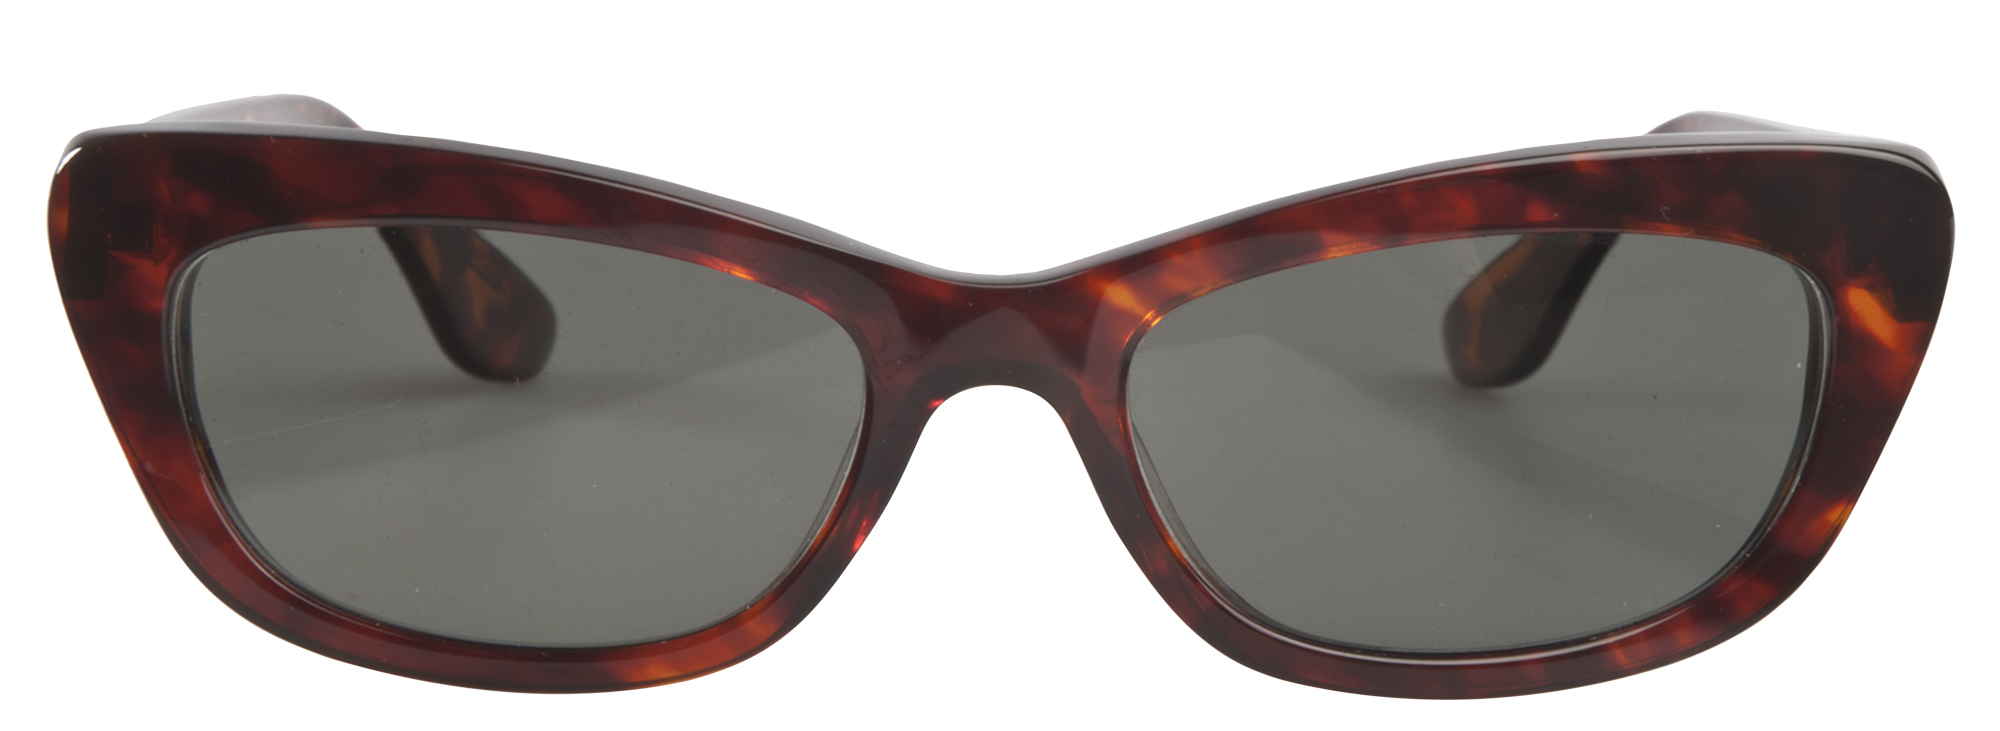 Winter Peepers: How to Pick the Perfect Pair of Sunglasses ...